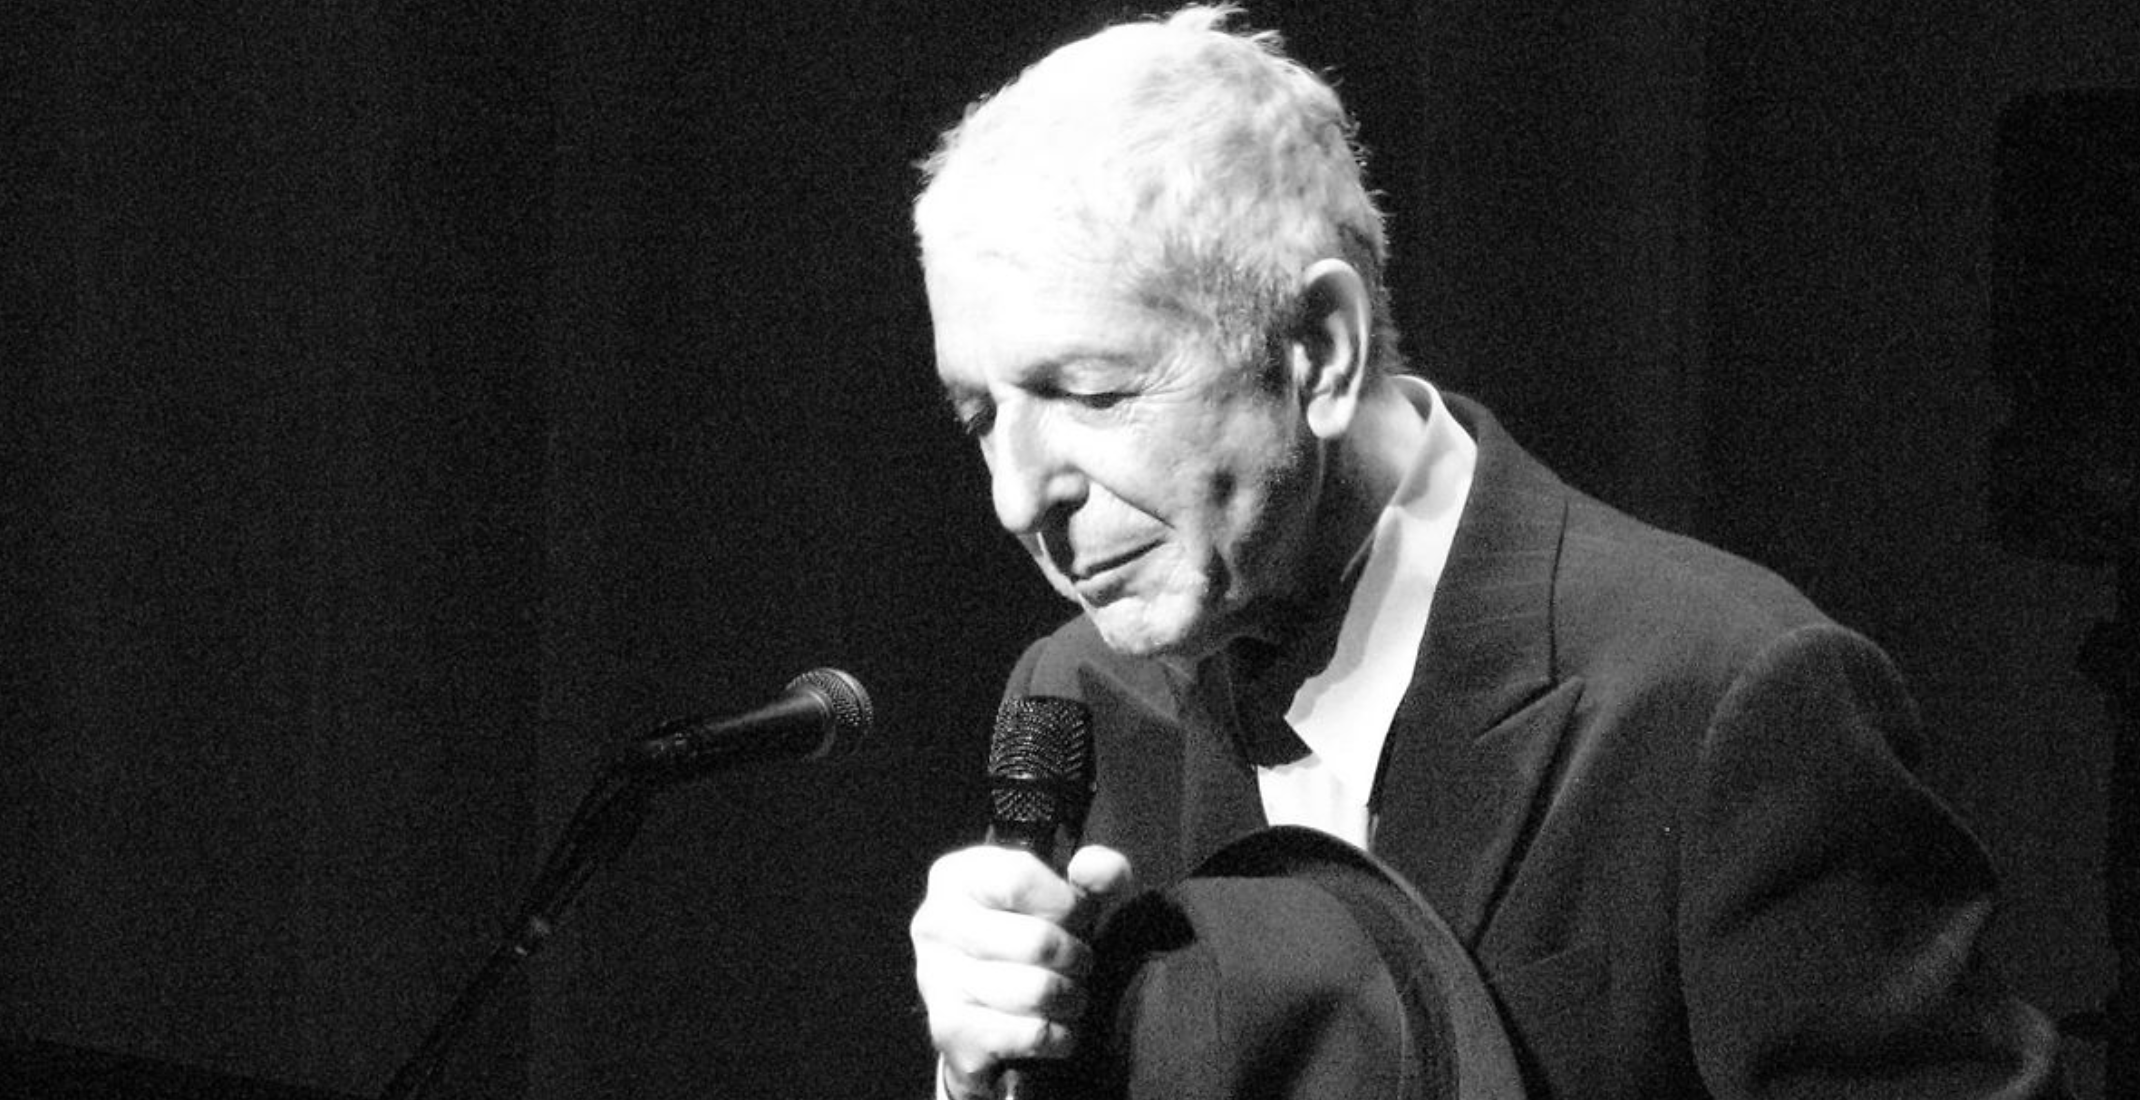 Leonard Cohen awarded Grammy for Best Rock Performance